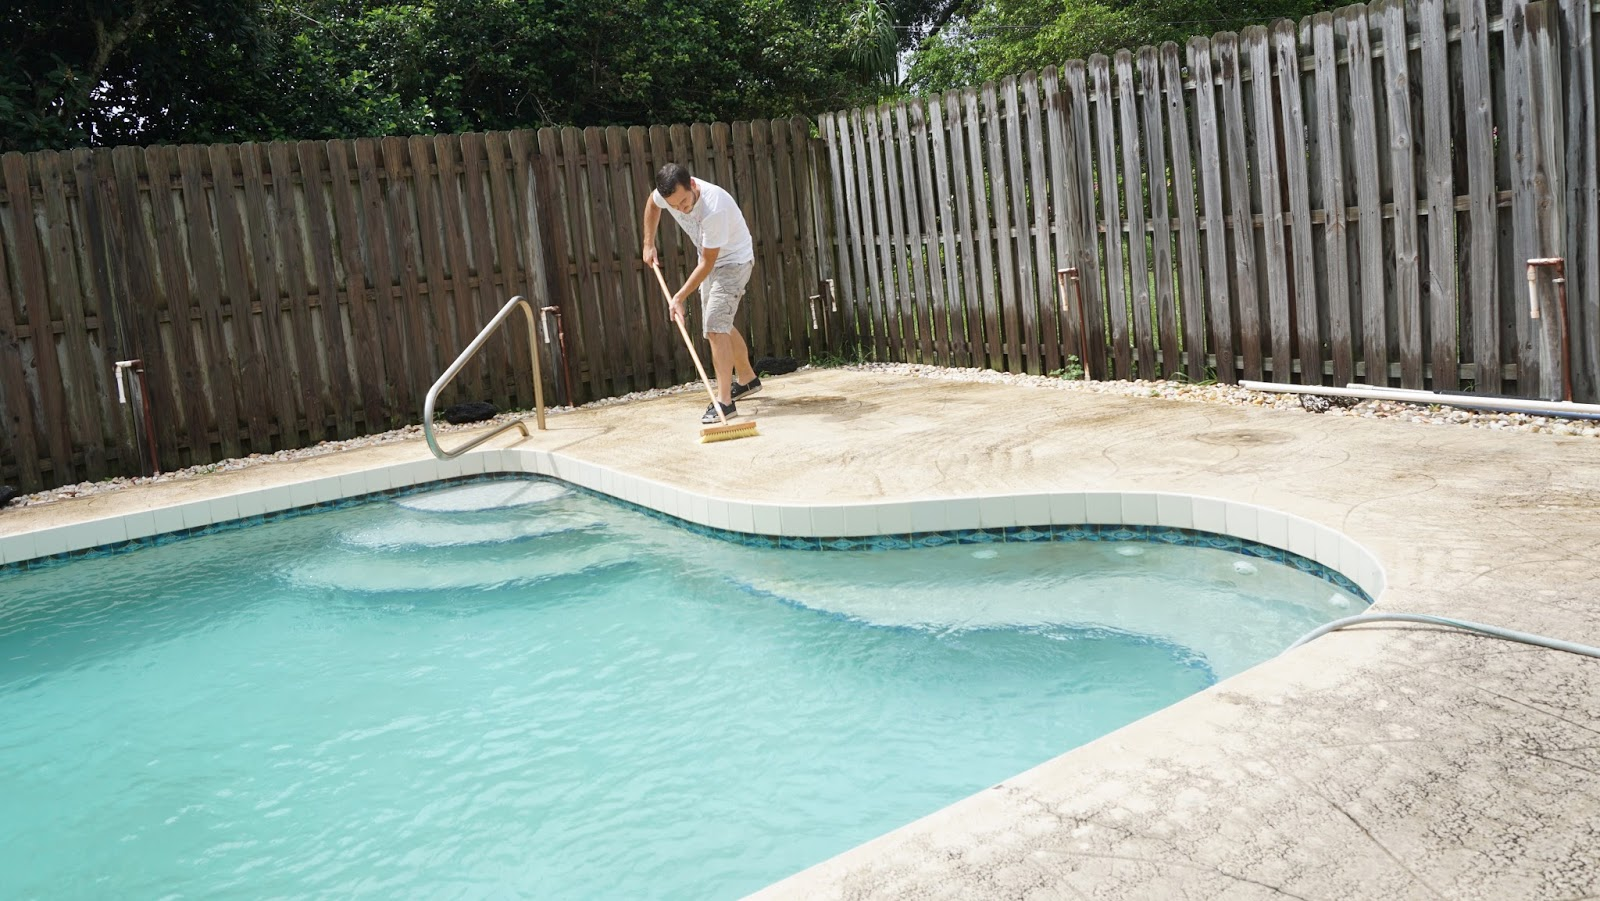 Lorraine stanick how to improve pool deck behr for Cleaning colored concrete